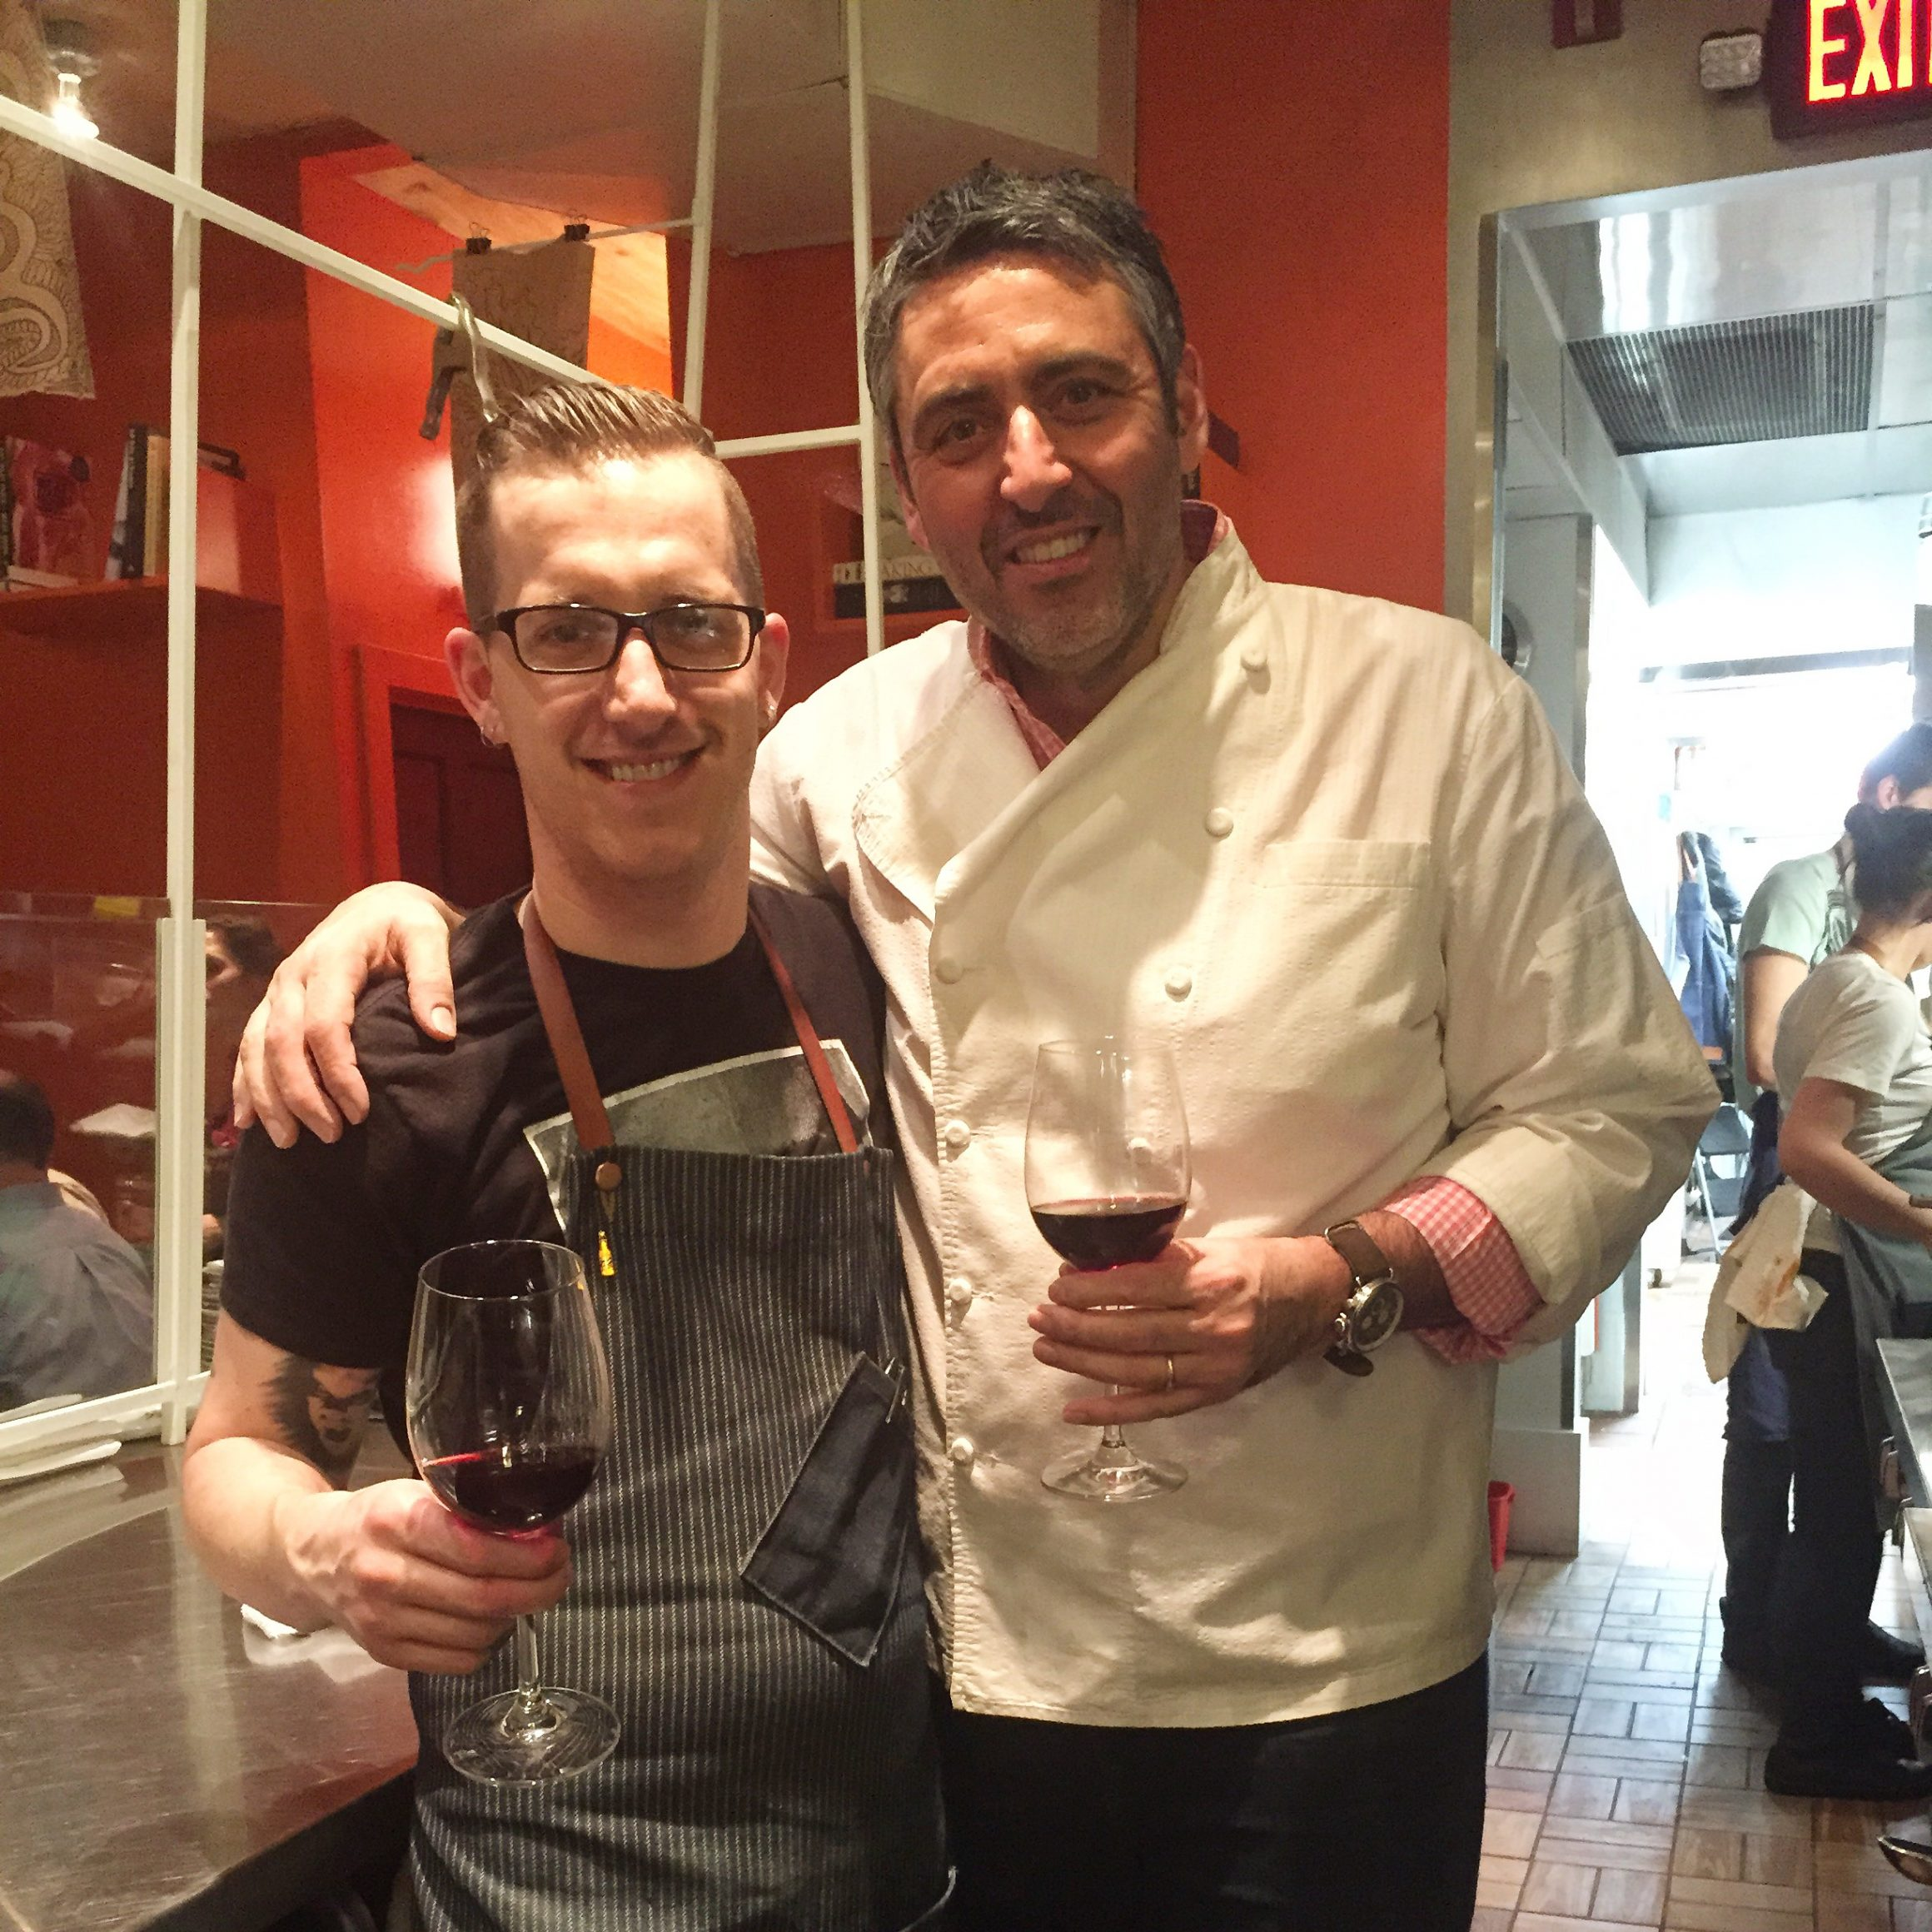 Talking with Others and Chef James Rigato & Luciano Del Signore 1